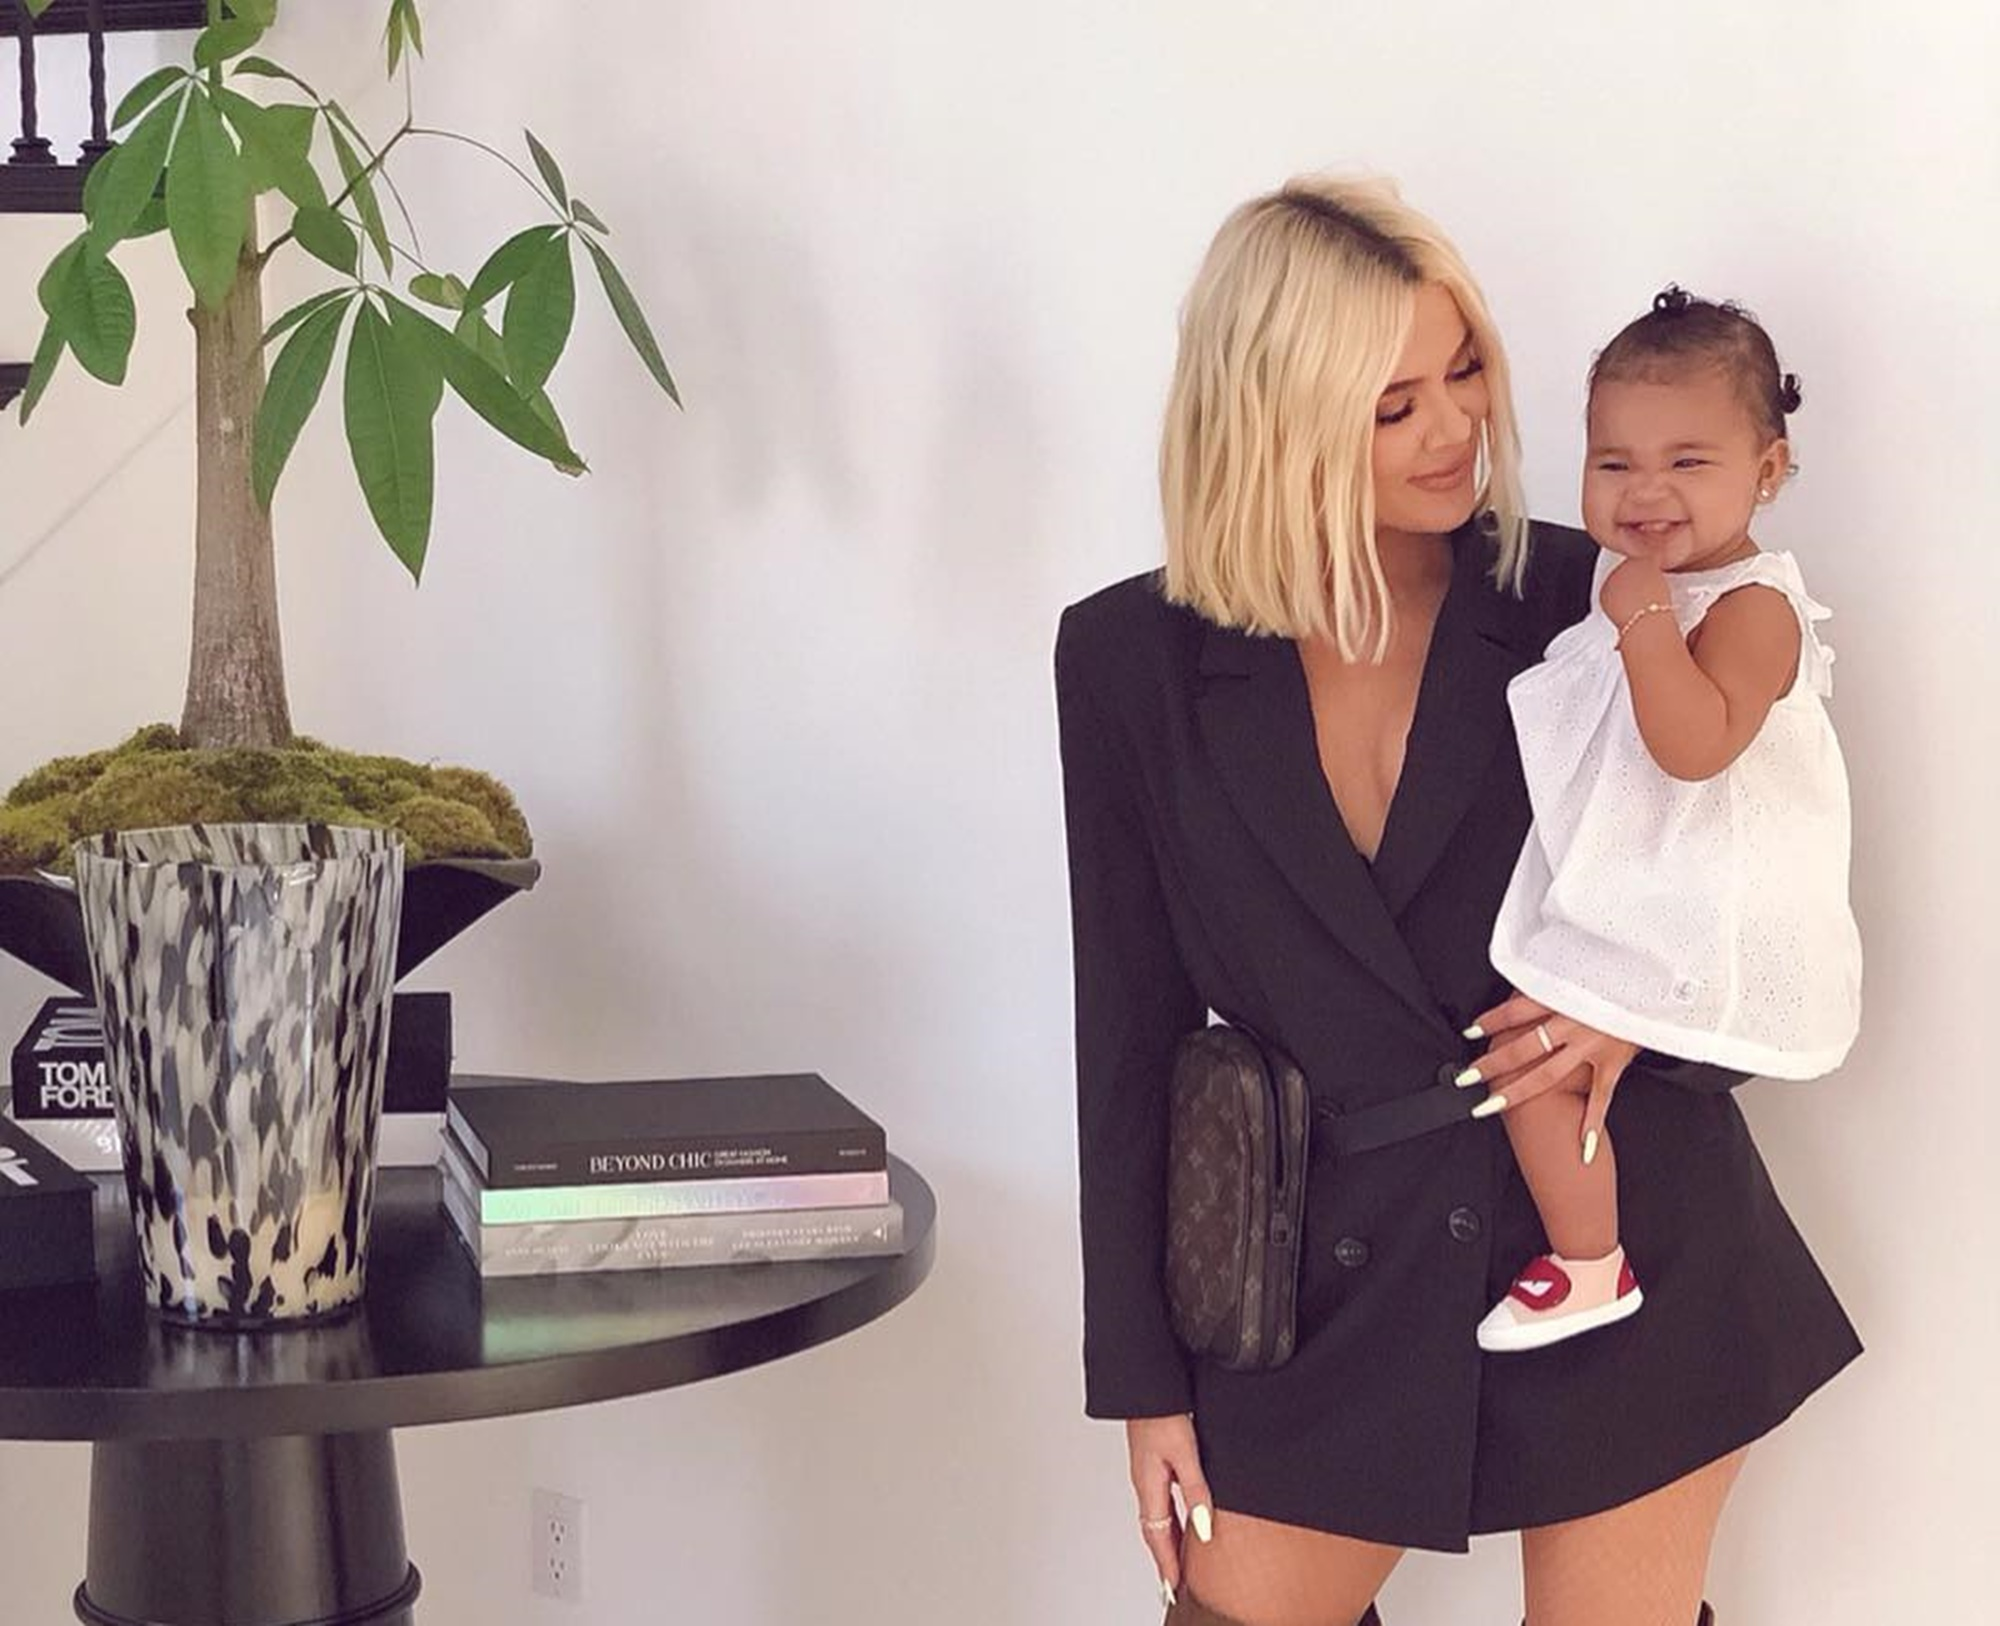 khloe-kardashian-throws-shade-at-people-who-do-not-deserve-her-kindness-days-after-meeting-tristan-thompson